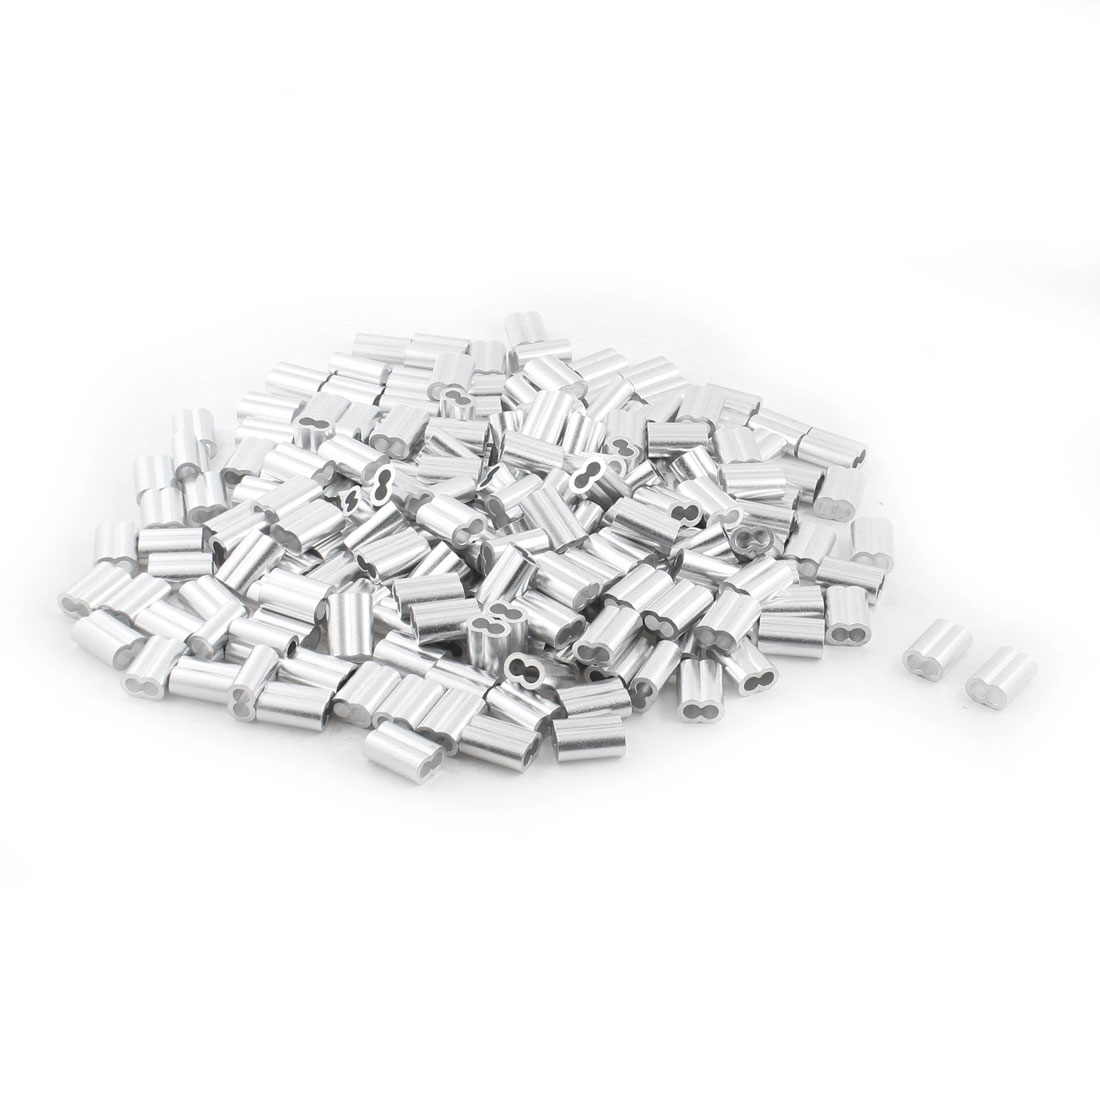 200Pcs Silver Tone Aluminum Ferrules Sleeves for 6mm Steel Wire Rope